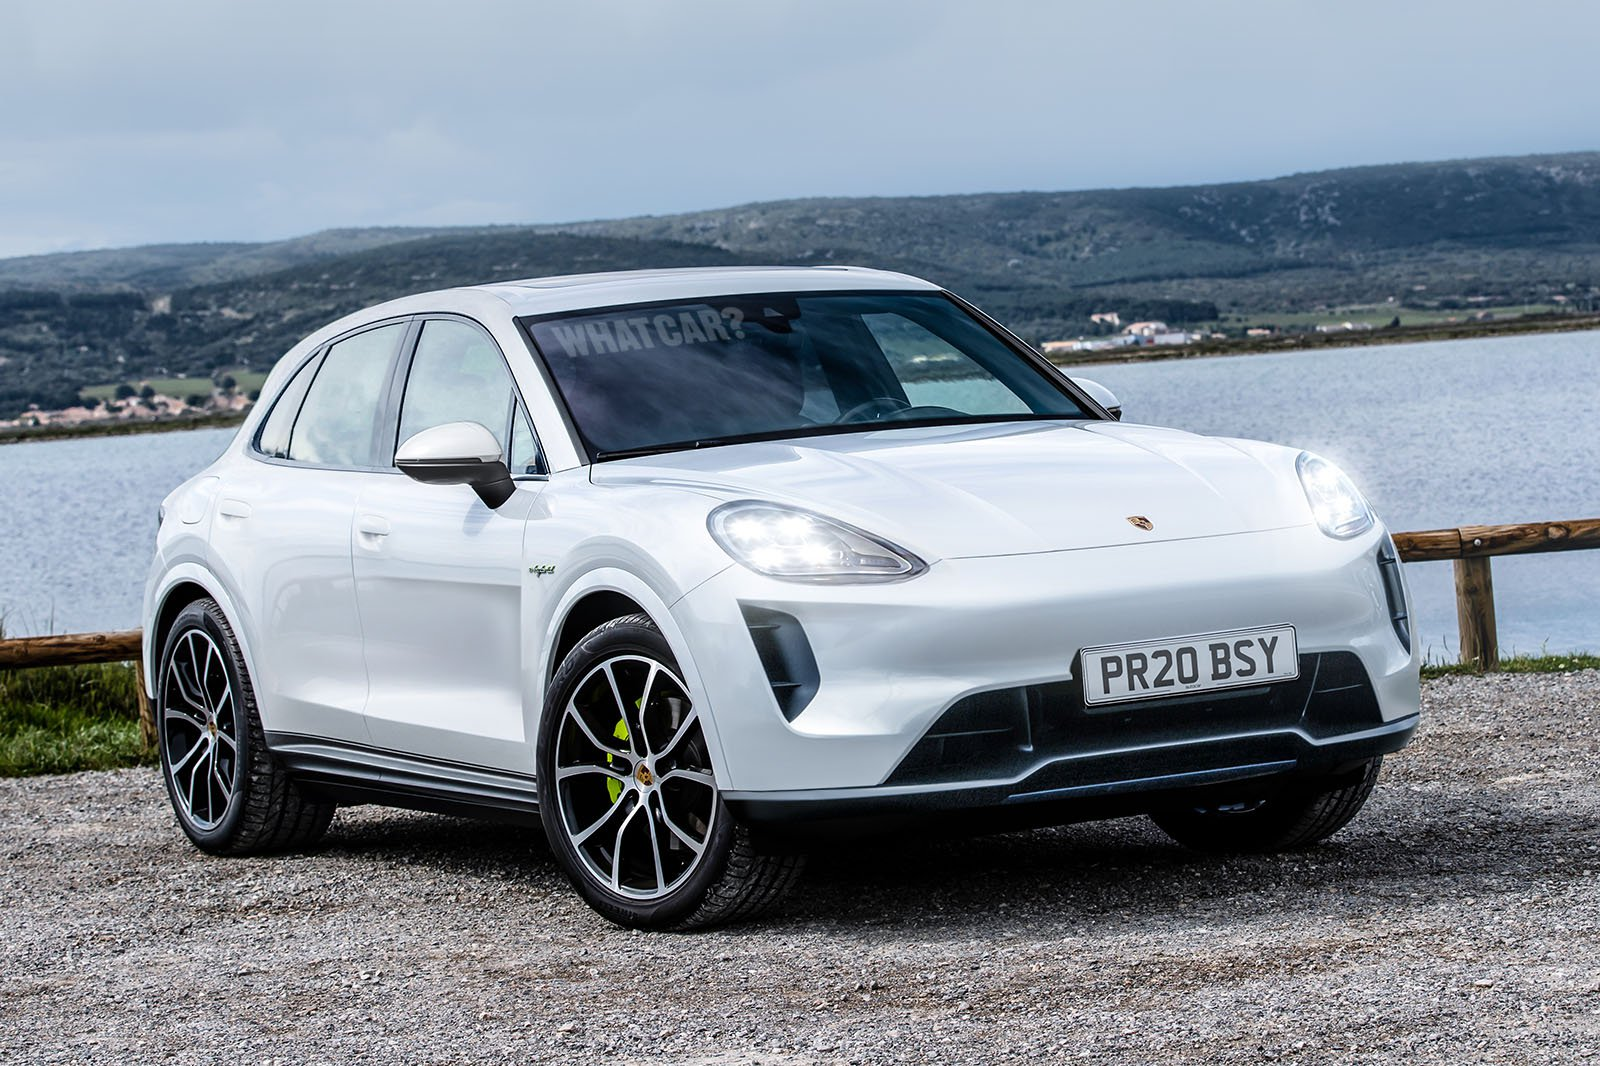 Porsche looks to take on Tesla Model X, Jaguar I,PACE with